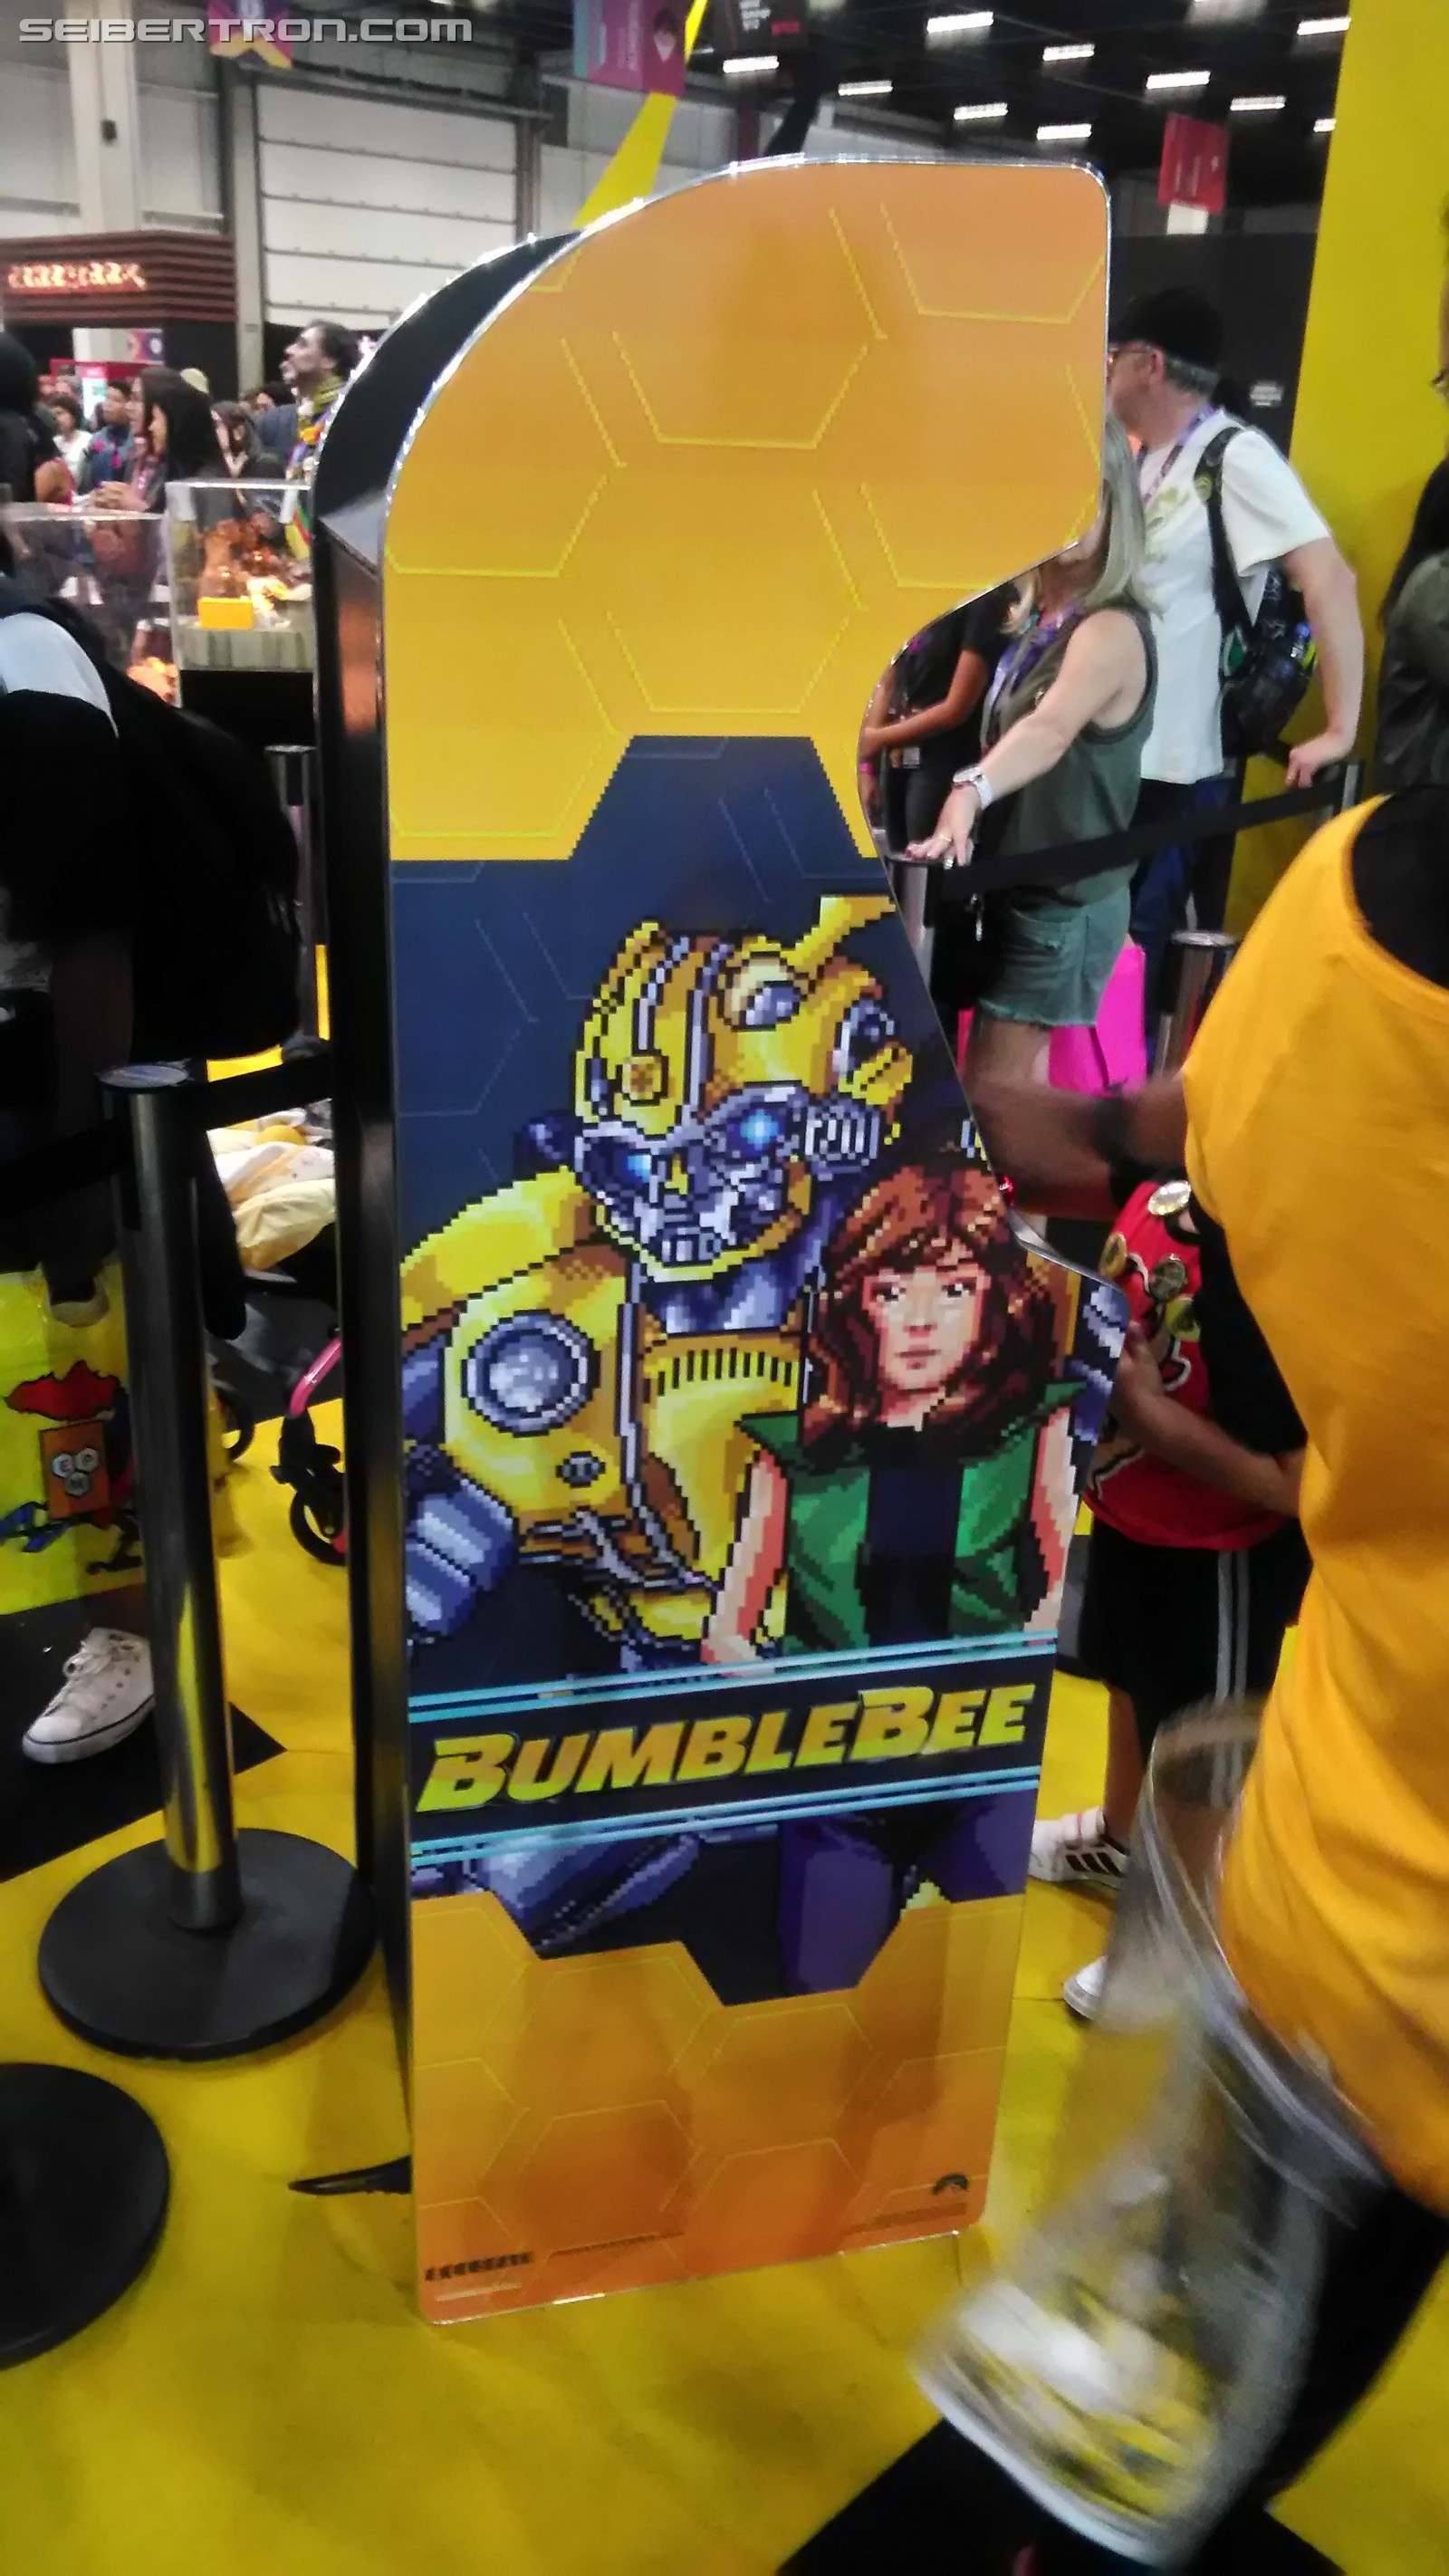 Transformers News: Seibertron Exclusive - Transformers Bumblebee Booth from Brazil's CCXP Comic Con Experience 2018